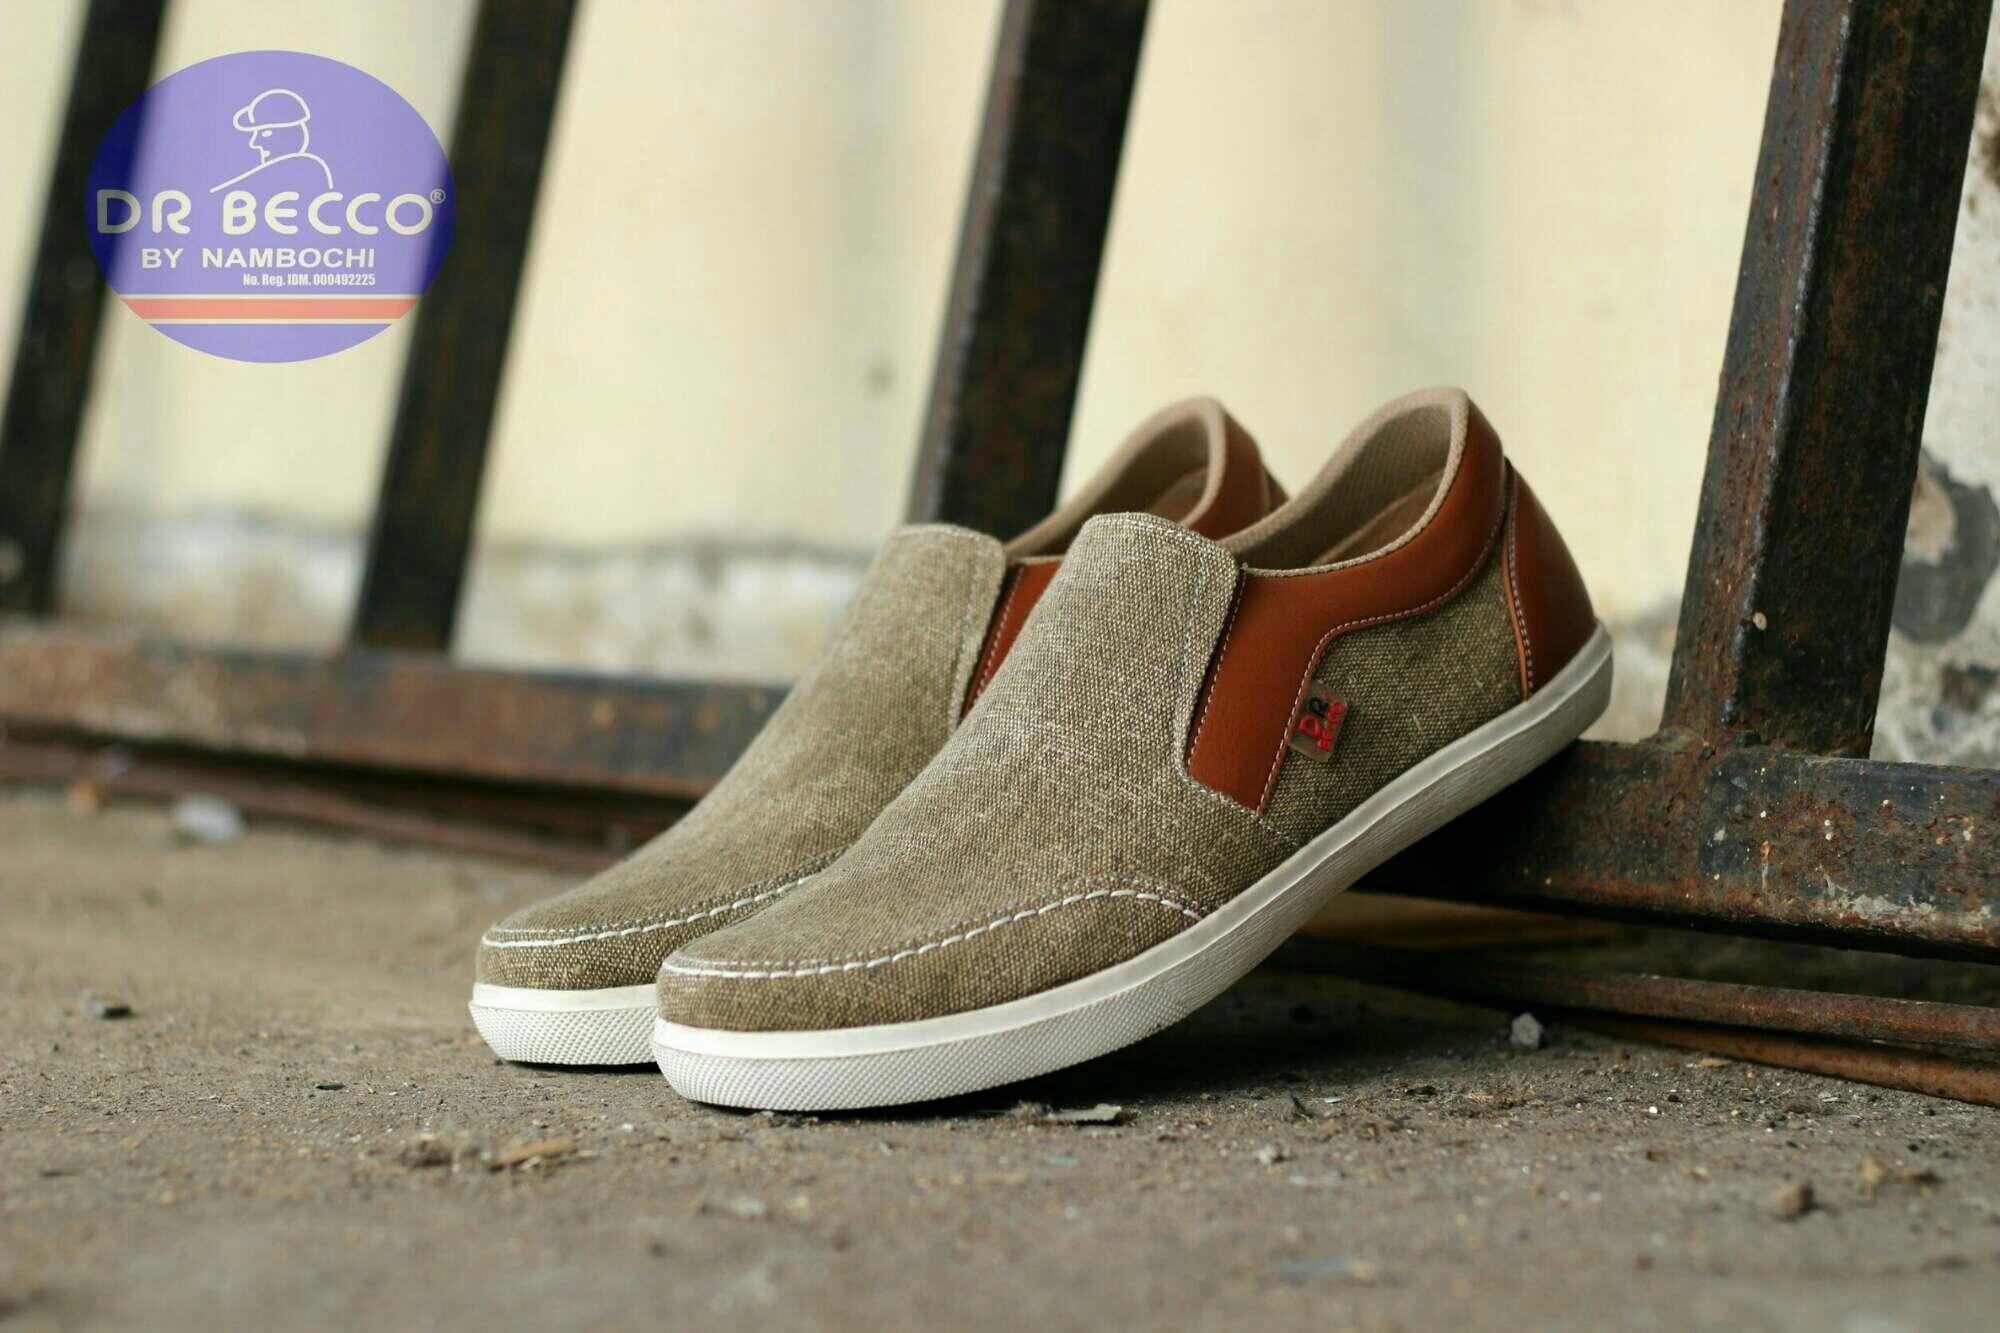 harga SEPATU PRIA CASUAL SLIP ON MOCDAS SLOP KERJA FORMAL SANTAI LOAFERS SLOP SNEAKERS BOOTS  SIMPLE ORIGINAL Dr. BECCO KICKERS NIKE VANS CONVERSE KANVAS COKLAT TAN Lazada.co.id